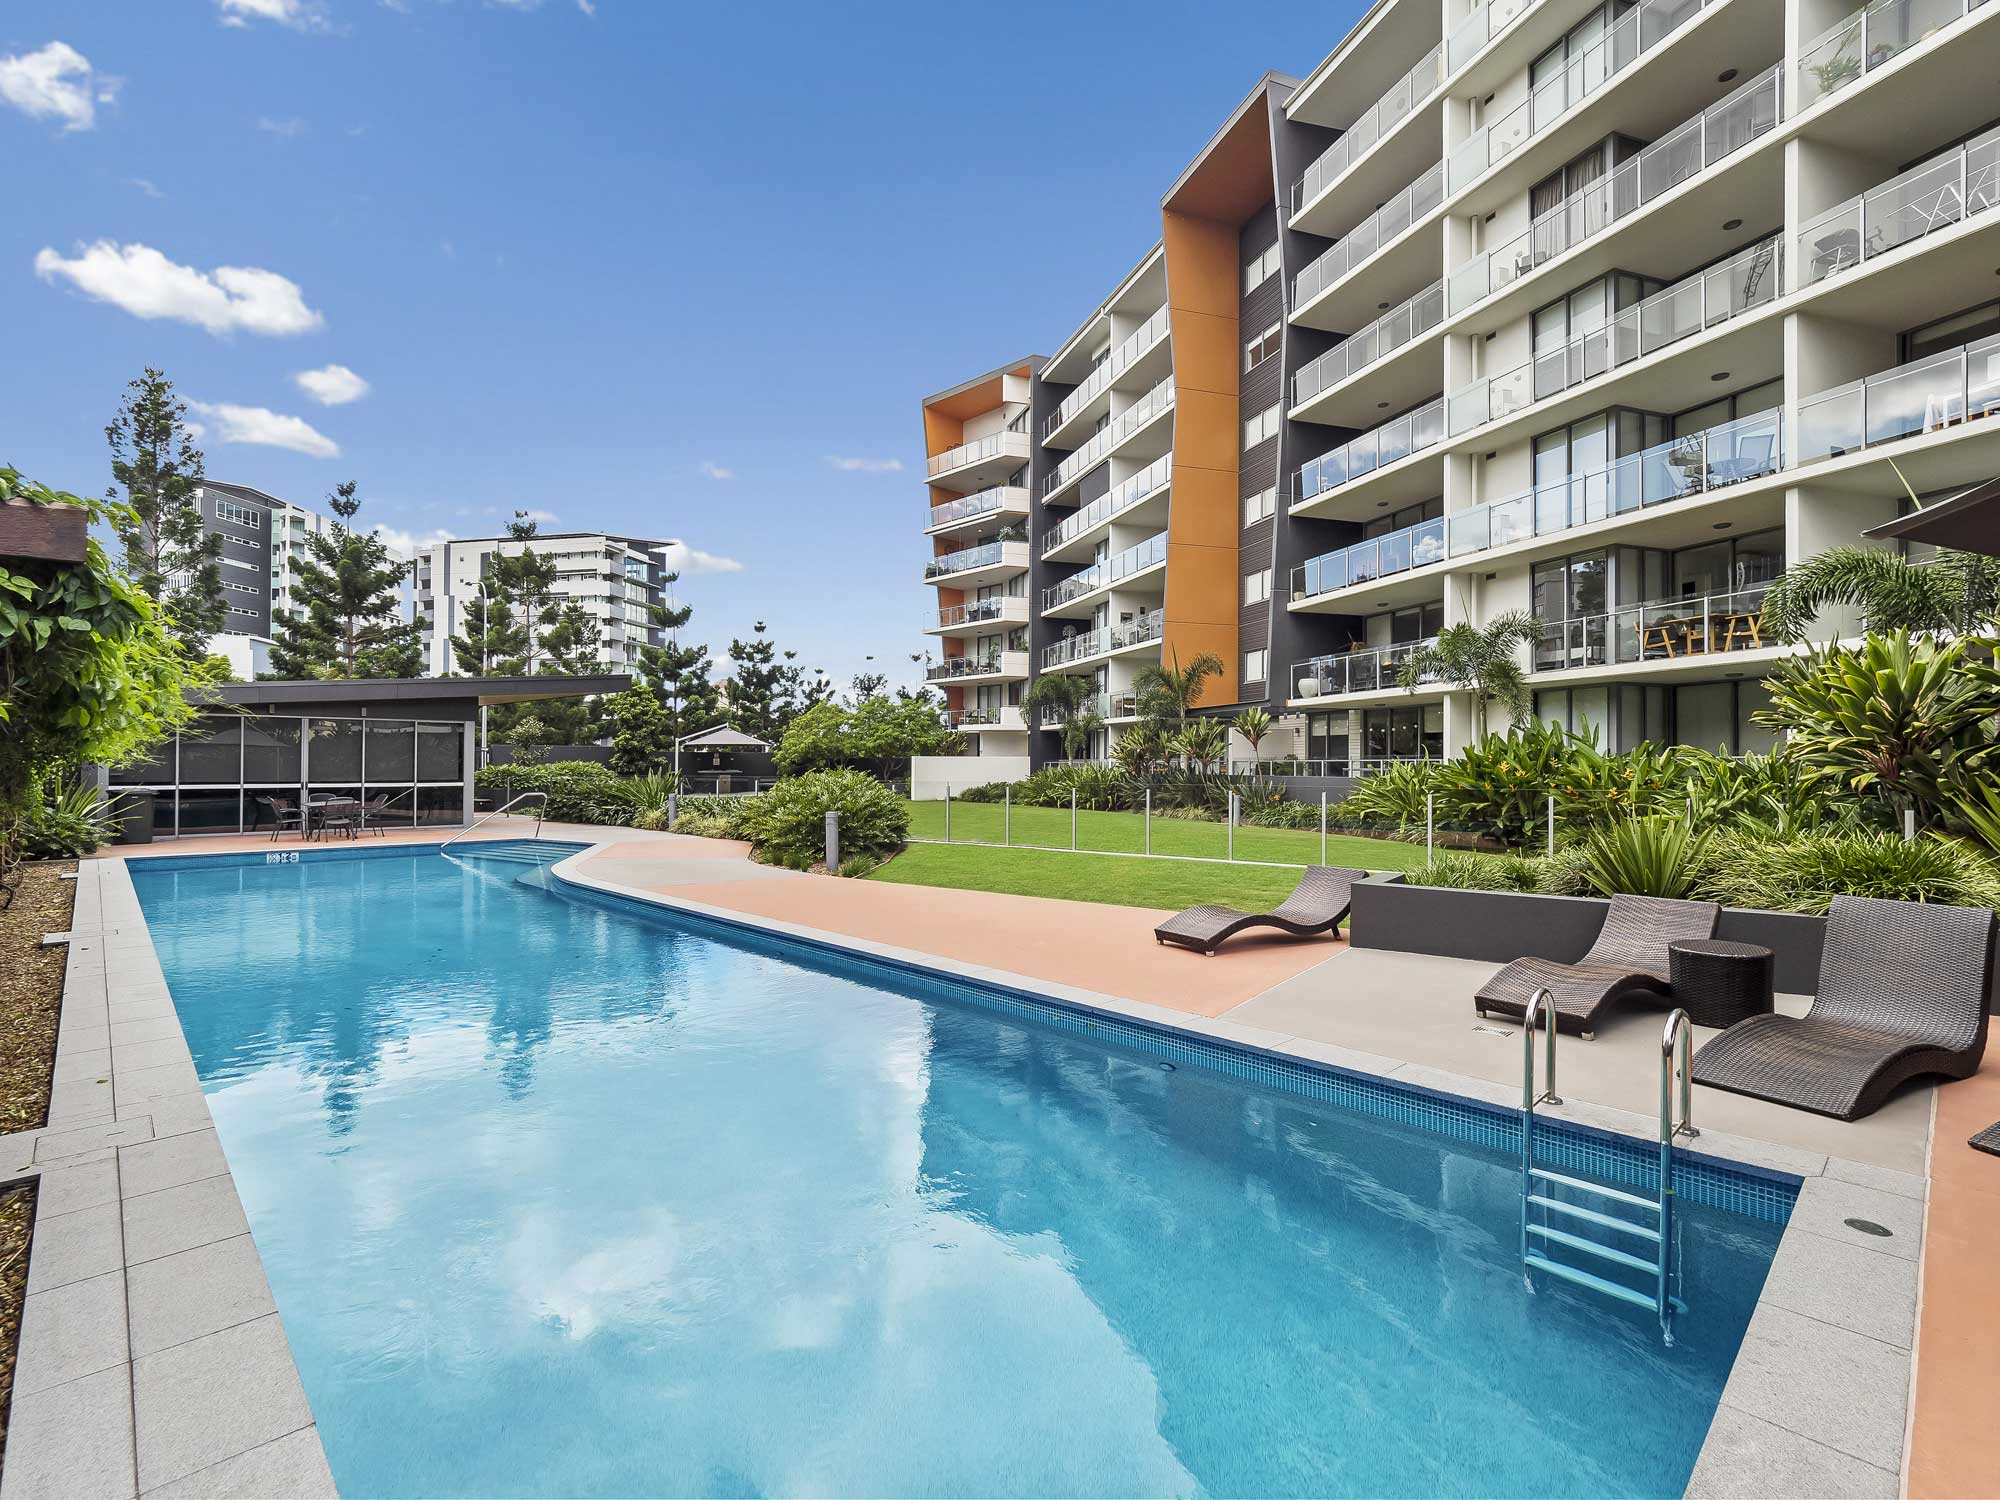 Real estate photography of Kangaroo Point apartment for sale - the pool area